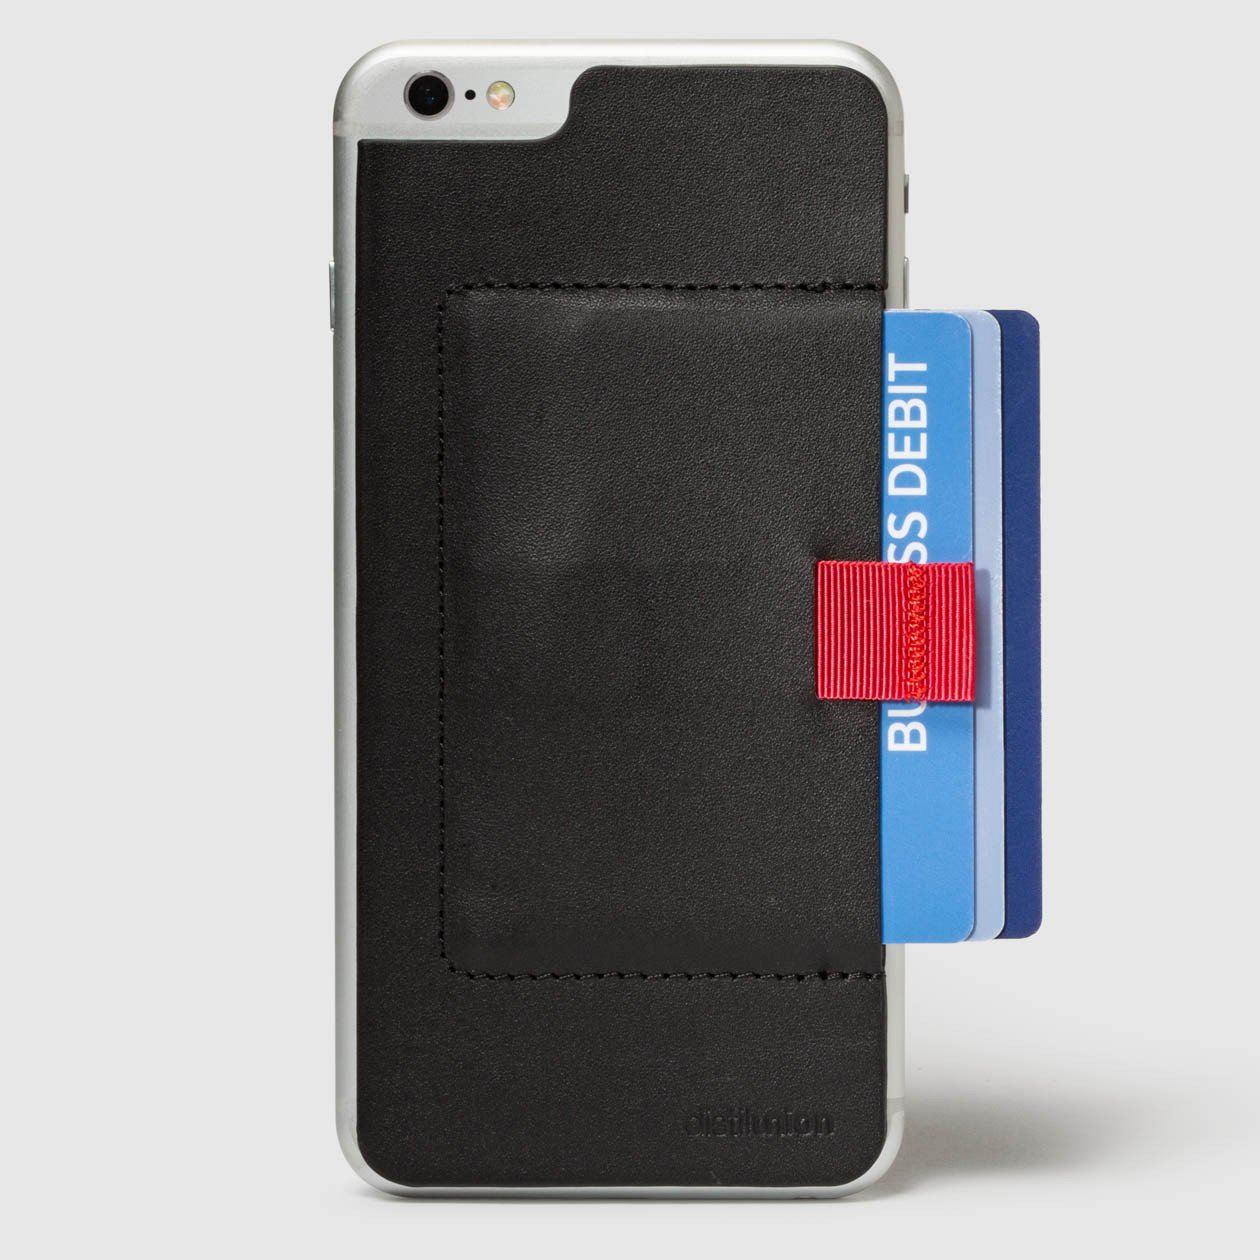 Distil Union Stick on wallet for phone